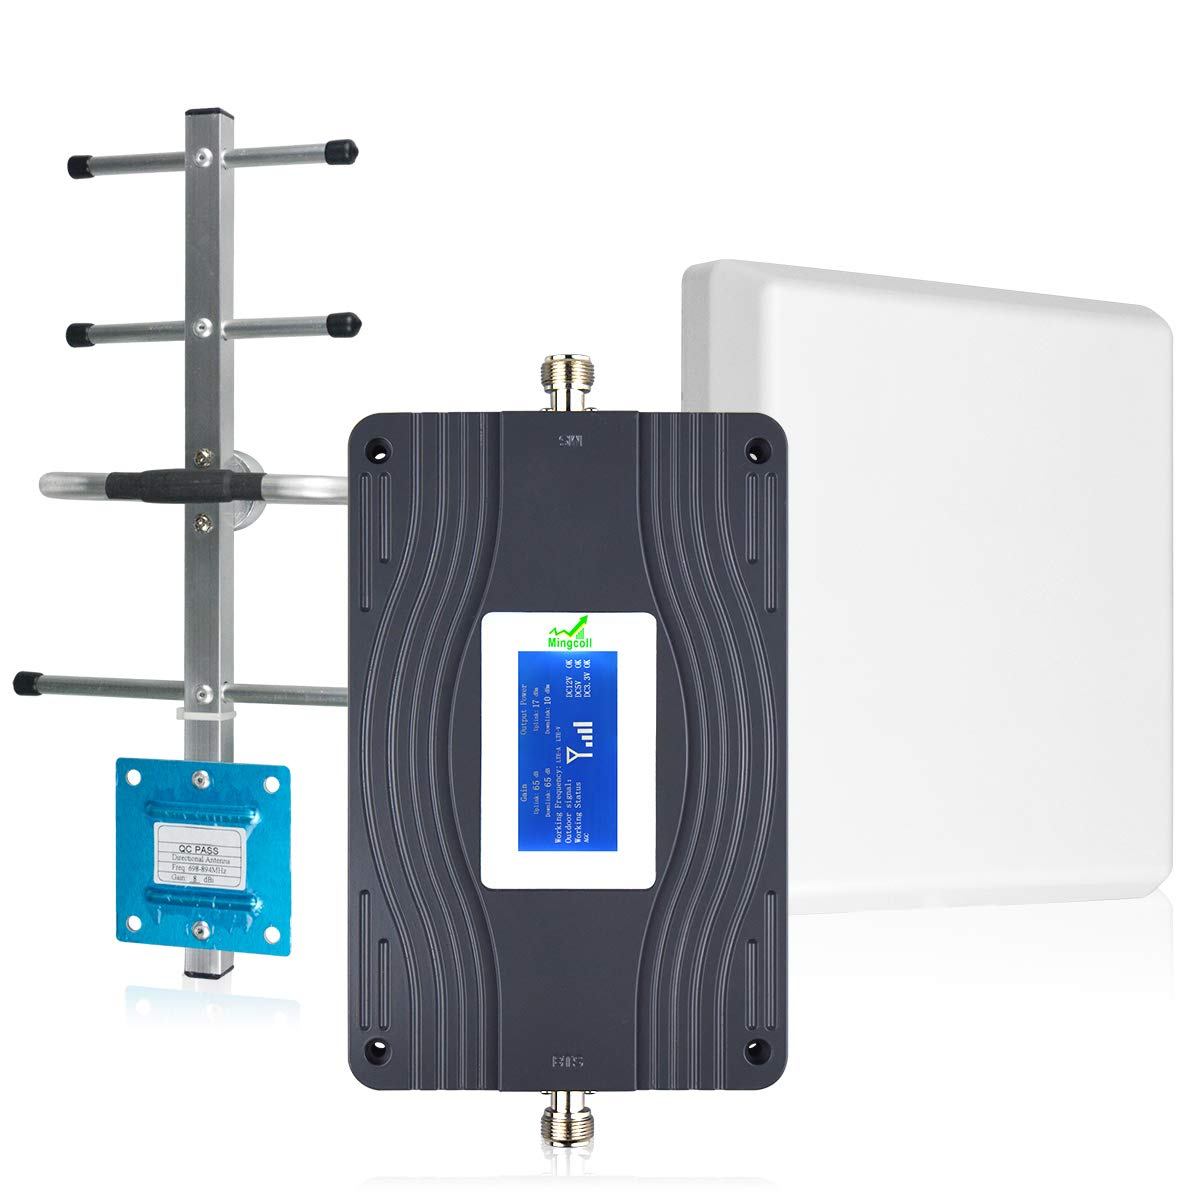 Verizon AT&T T-Mobile Cell Phone Signal Booster 4G LTE Dual Band 700MHz Band 13/12/17 Mobile Signal Repeater Cell Phone Amplifier Signal Booster Verizon AT&T for Home Mingcoll (SDB70-NXL)